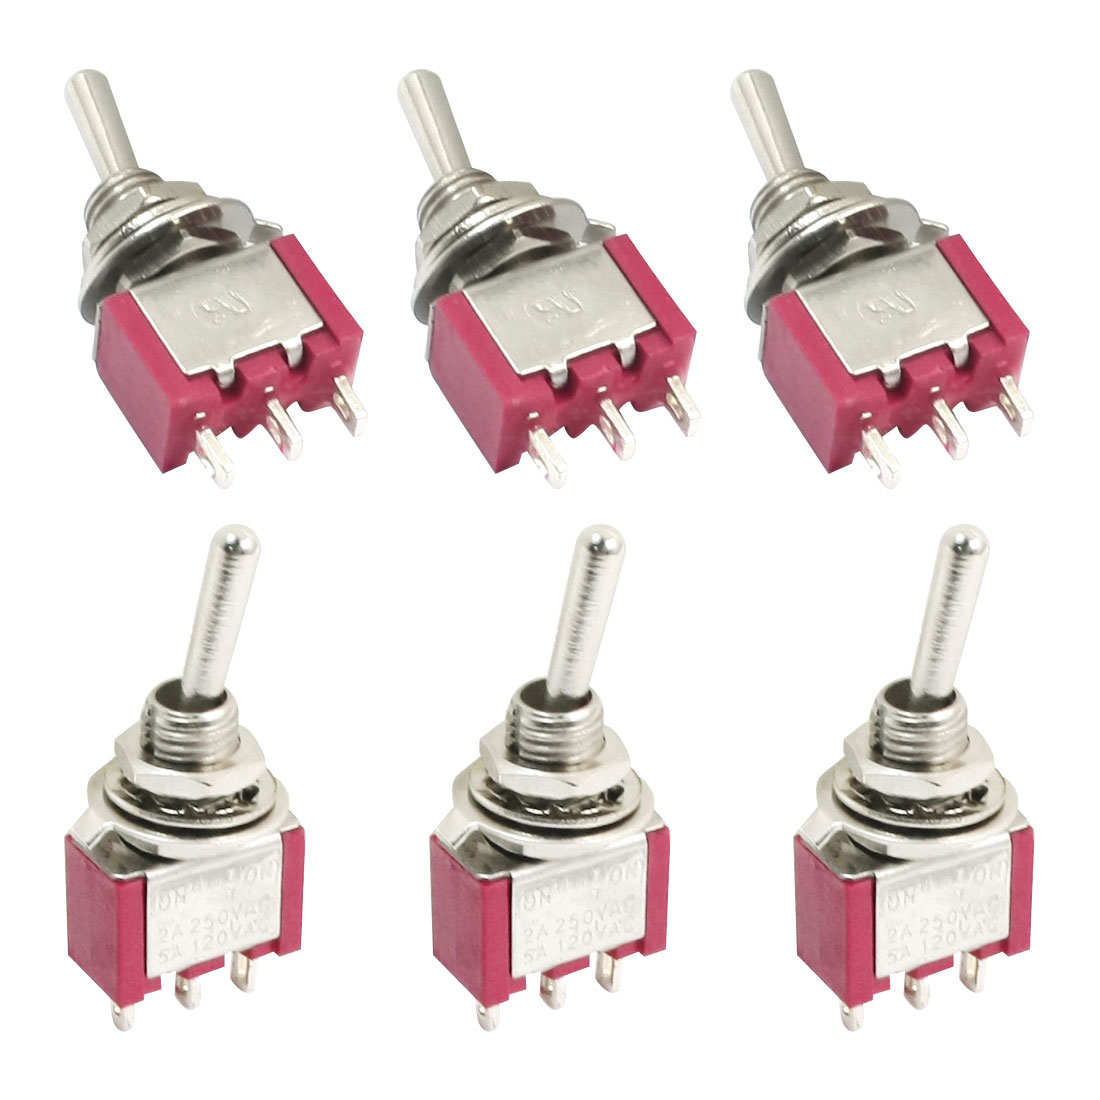 NO NC SPDT ON-ON 2 Position Locking Electric Toggle Switch AC 120V 5A Red 6pcs